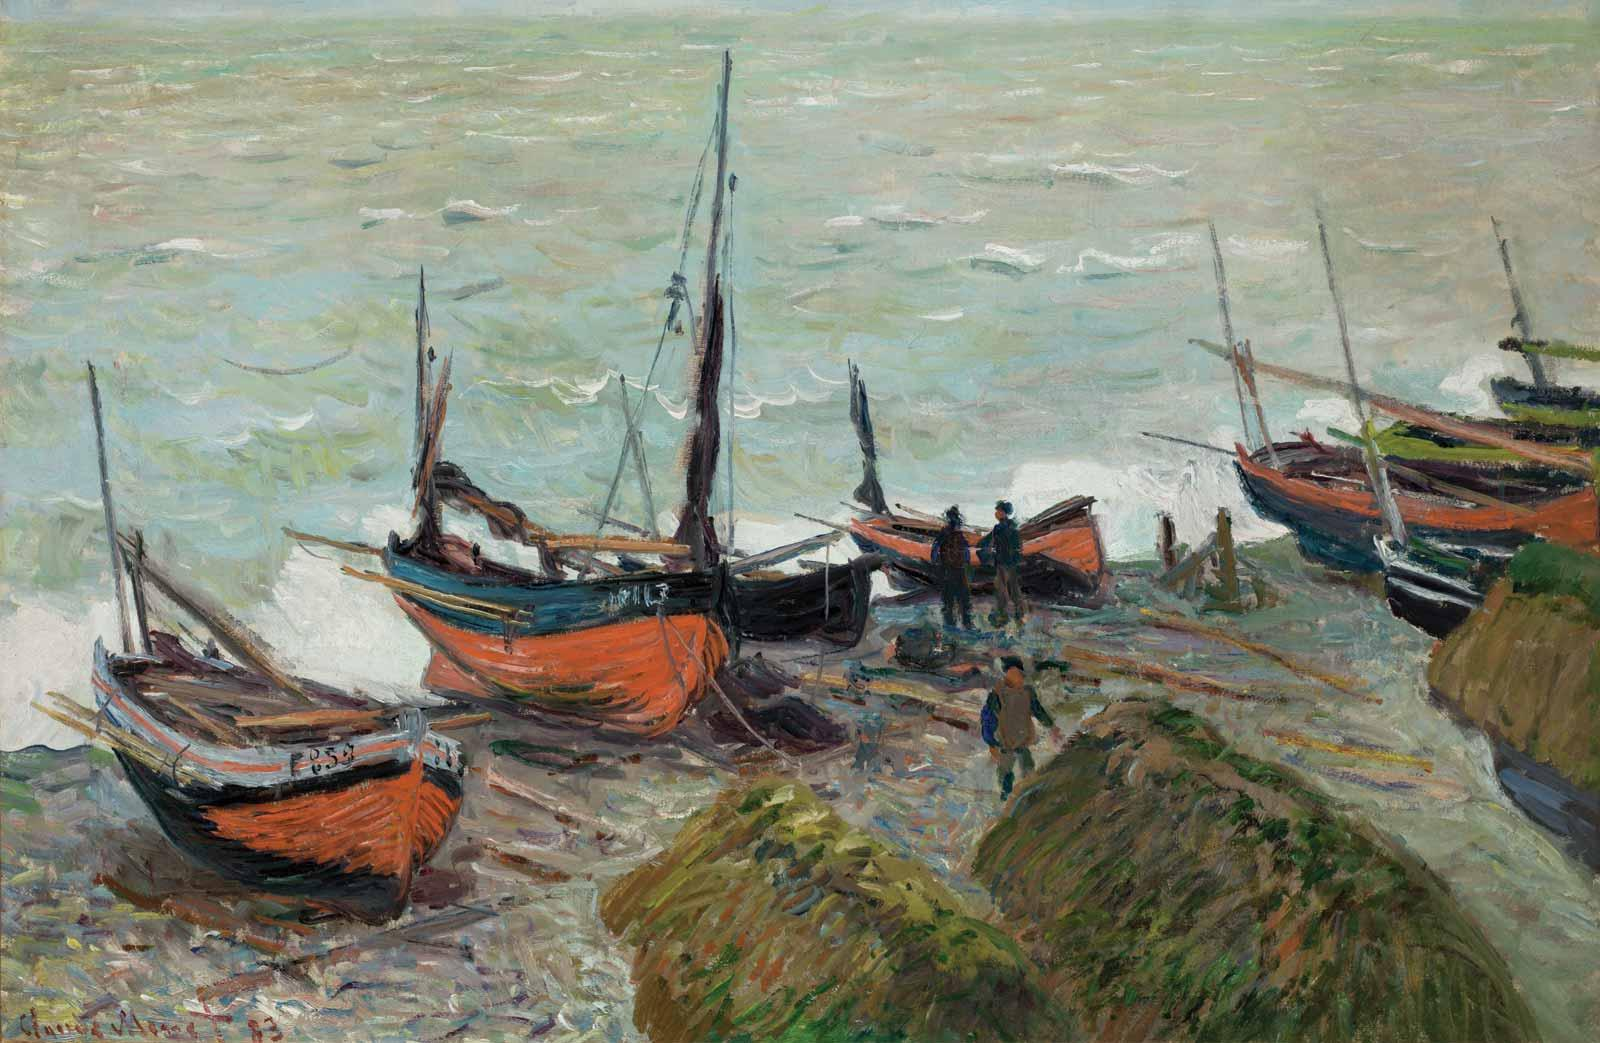 Claude Monet, Fishing Boats, 1883.